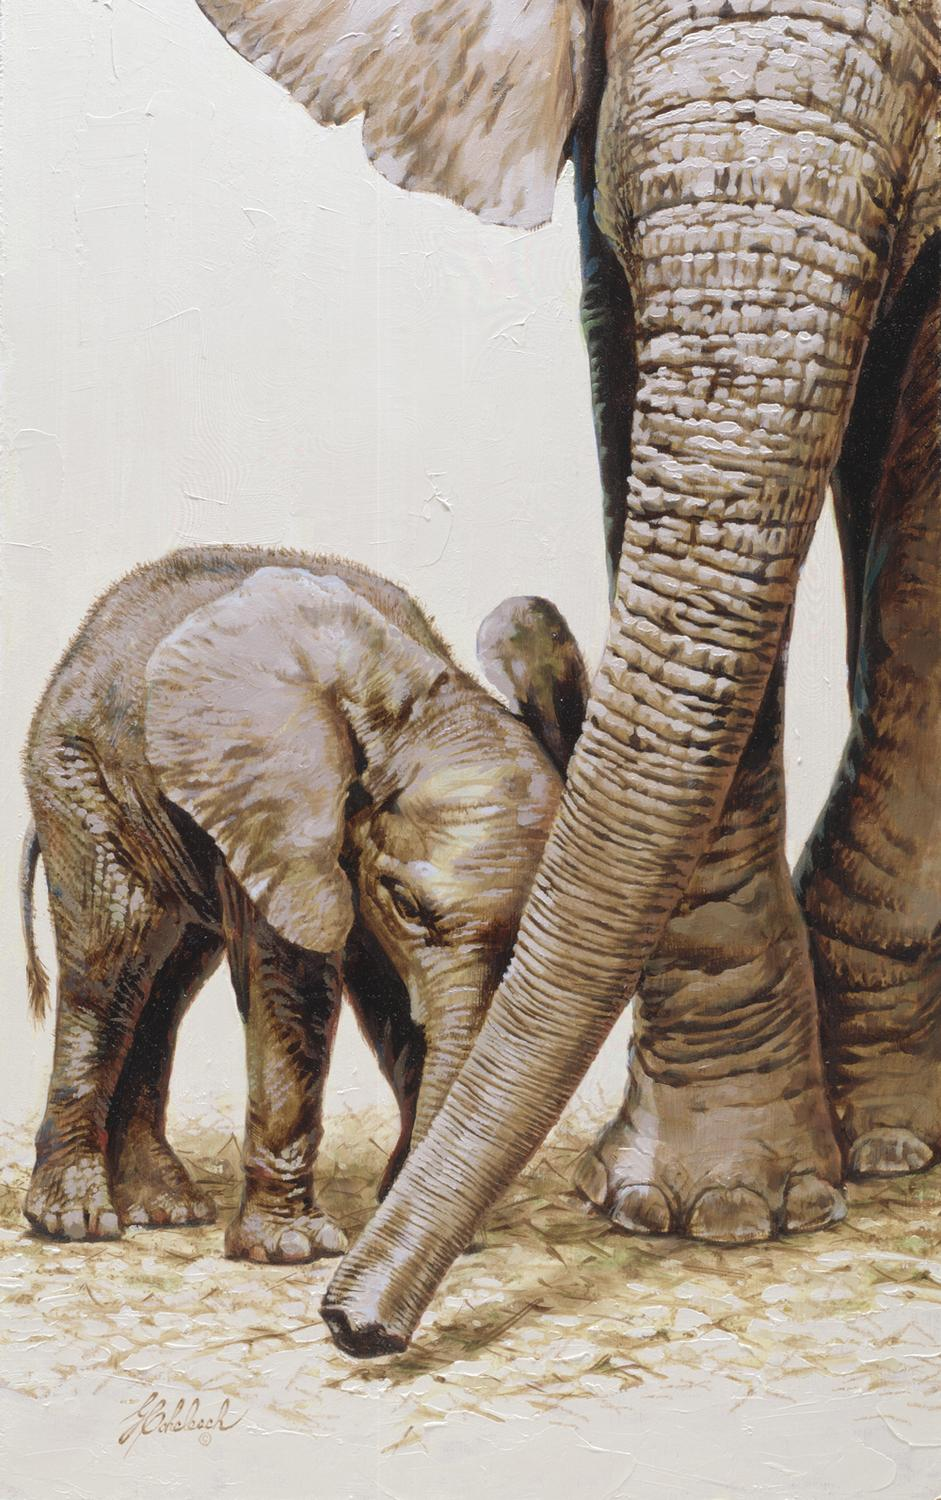 """Elephant Poster (Knoxville Zoo)""  -  25"" x 13"" ""Elephant Poster"" - Elephants  Elephant Paintings  Elephant Art"